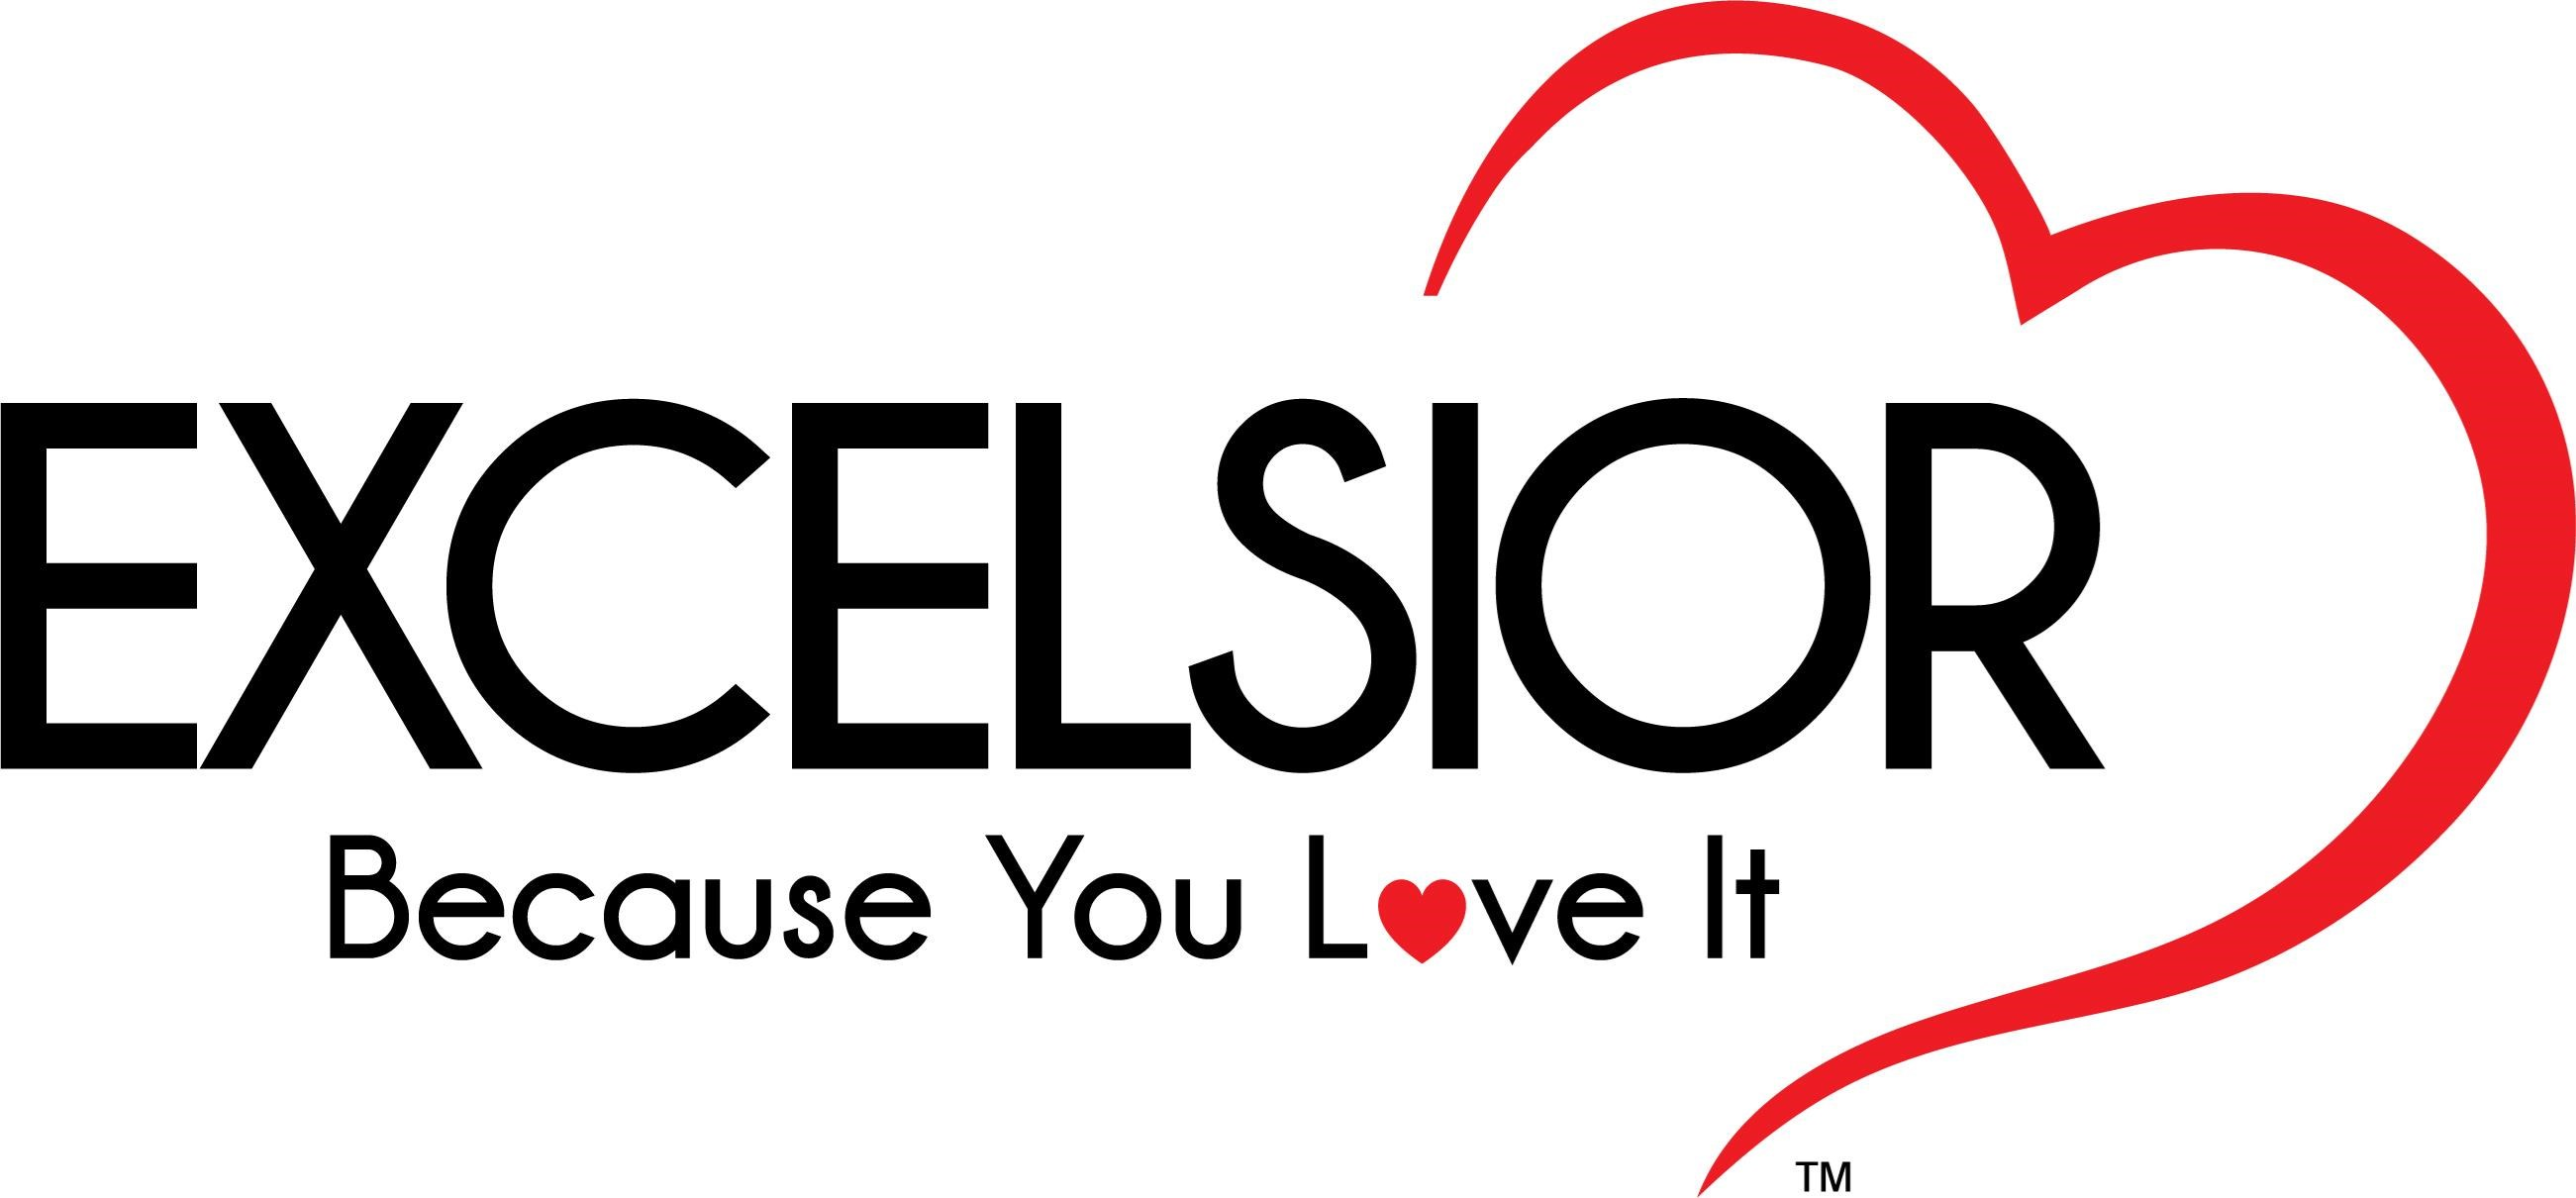 Stationary Furniture Stationary Furniture Protection $10001-$1250 by Excelsior at C. S. Wo & Sons California